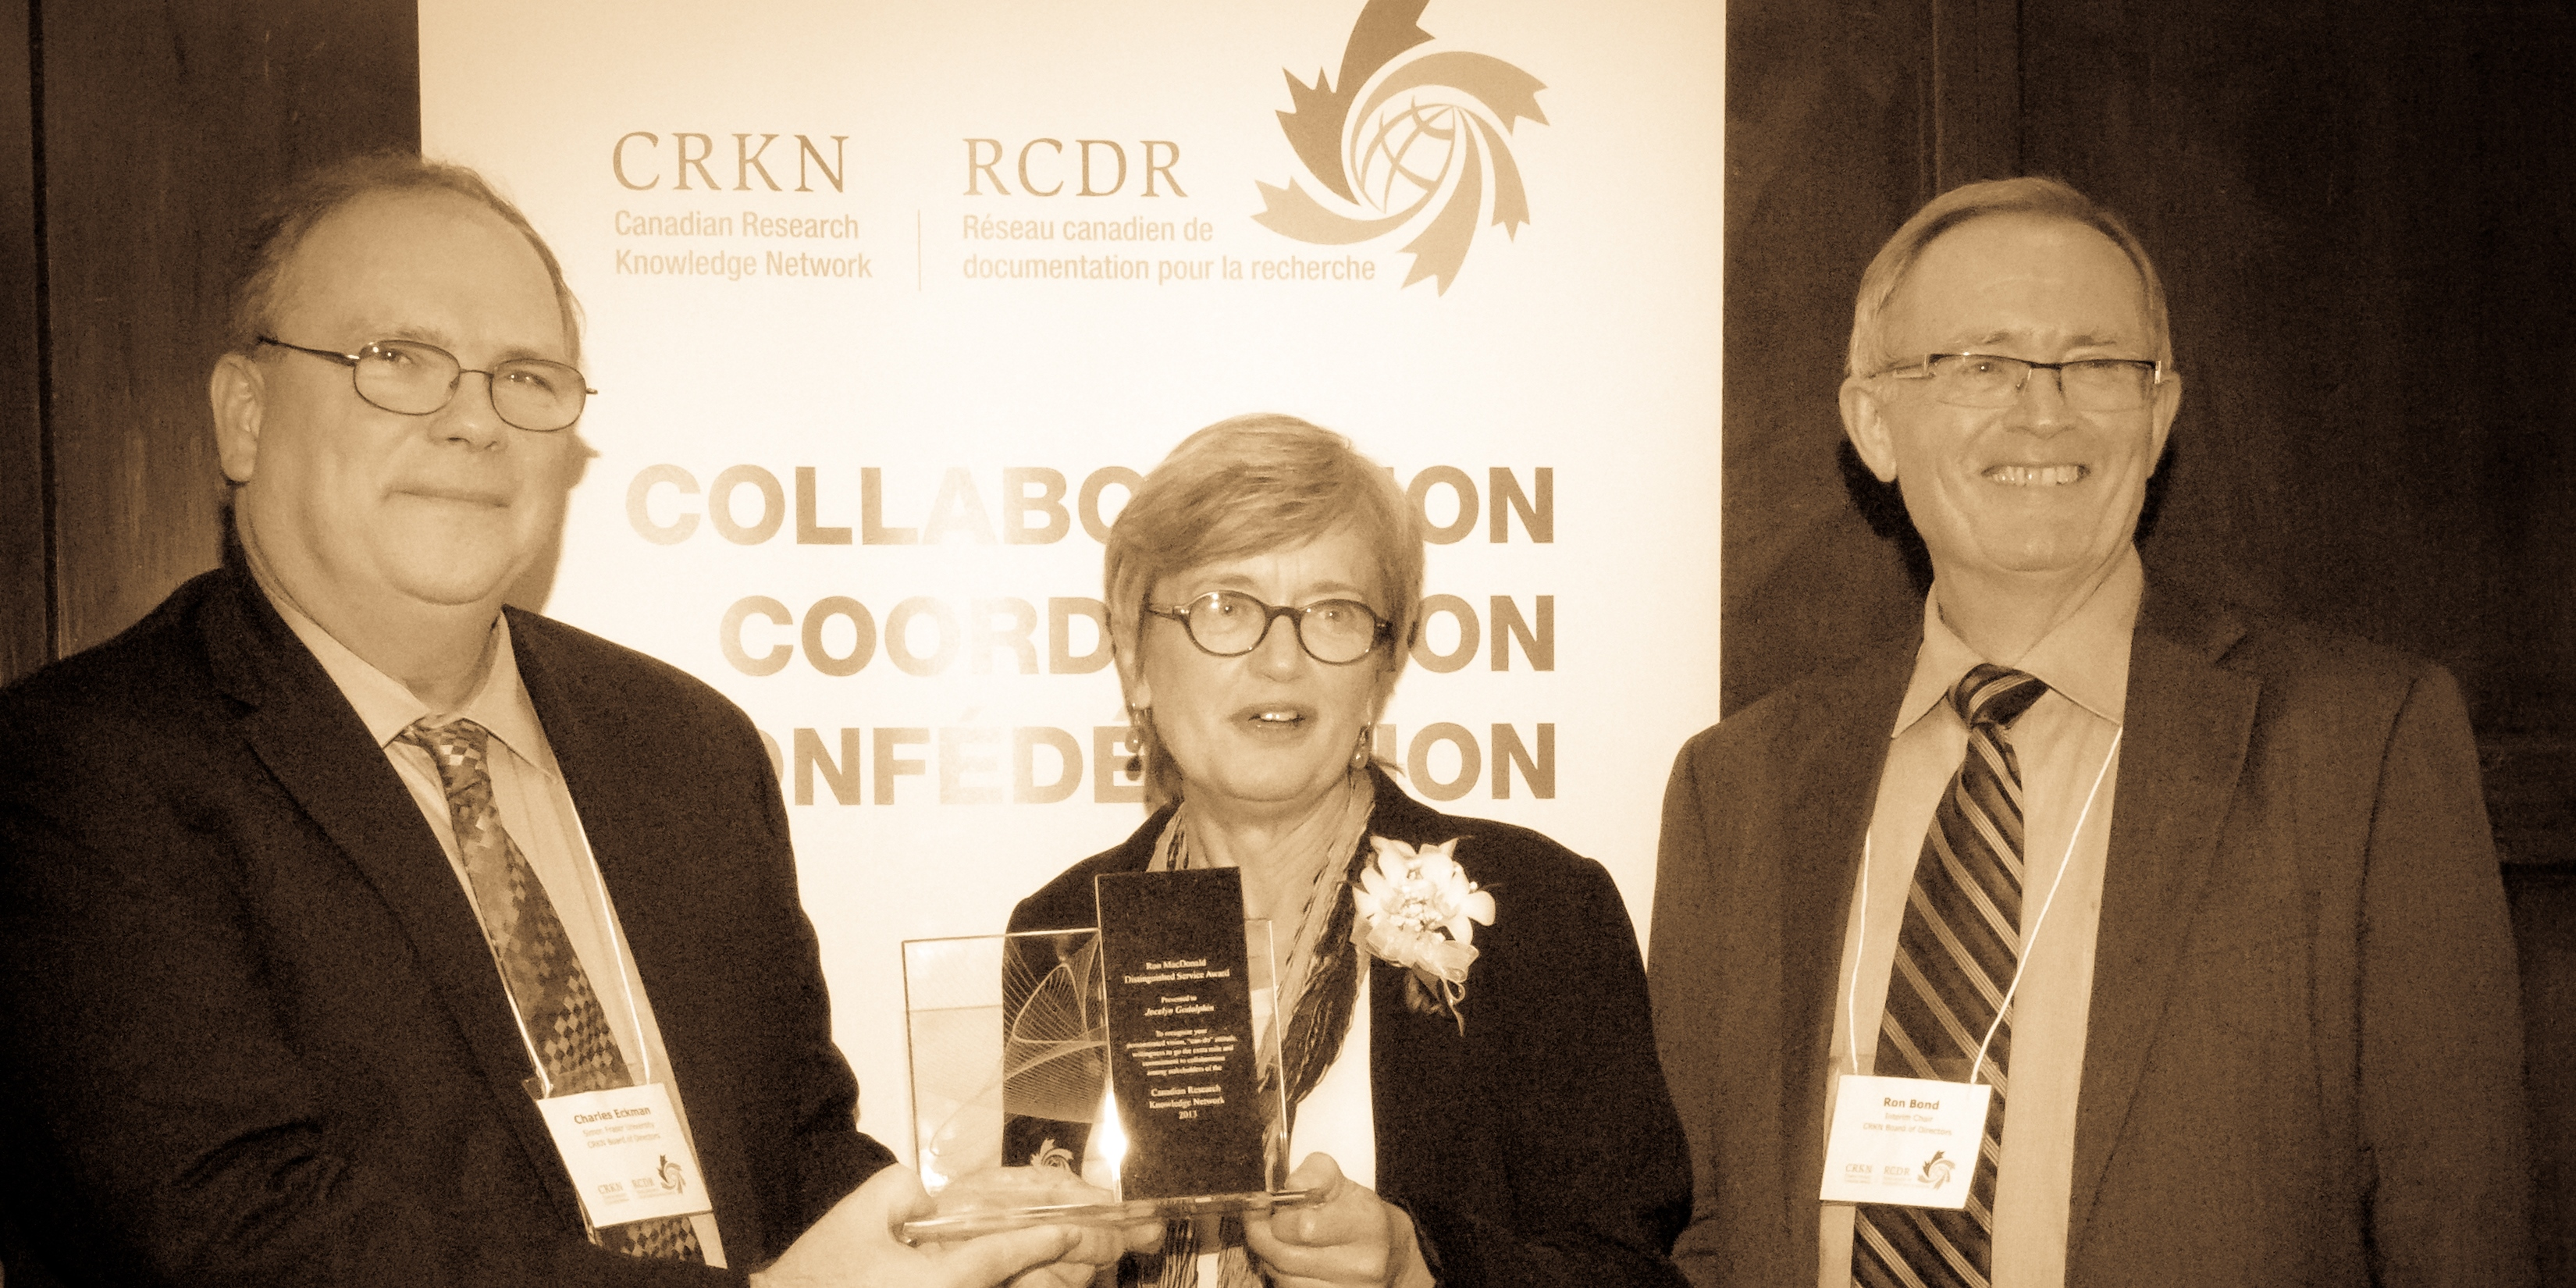 Chuck Eckman, Jocelyn Godolphin and Ron Bond at the 2013 AGM in Toronto